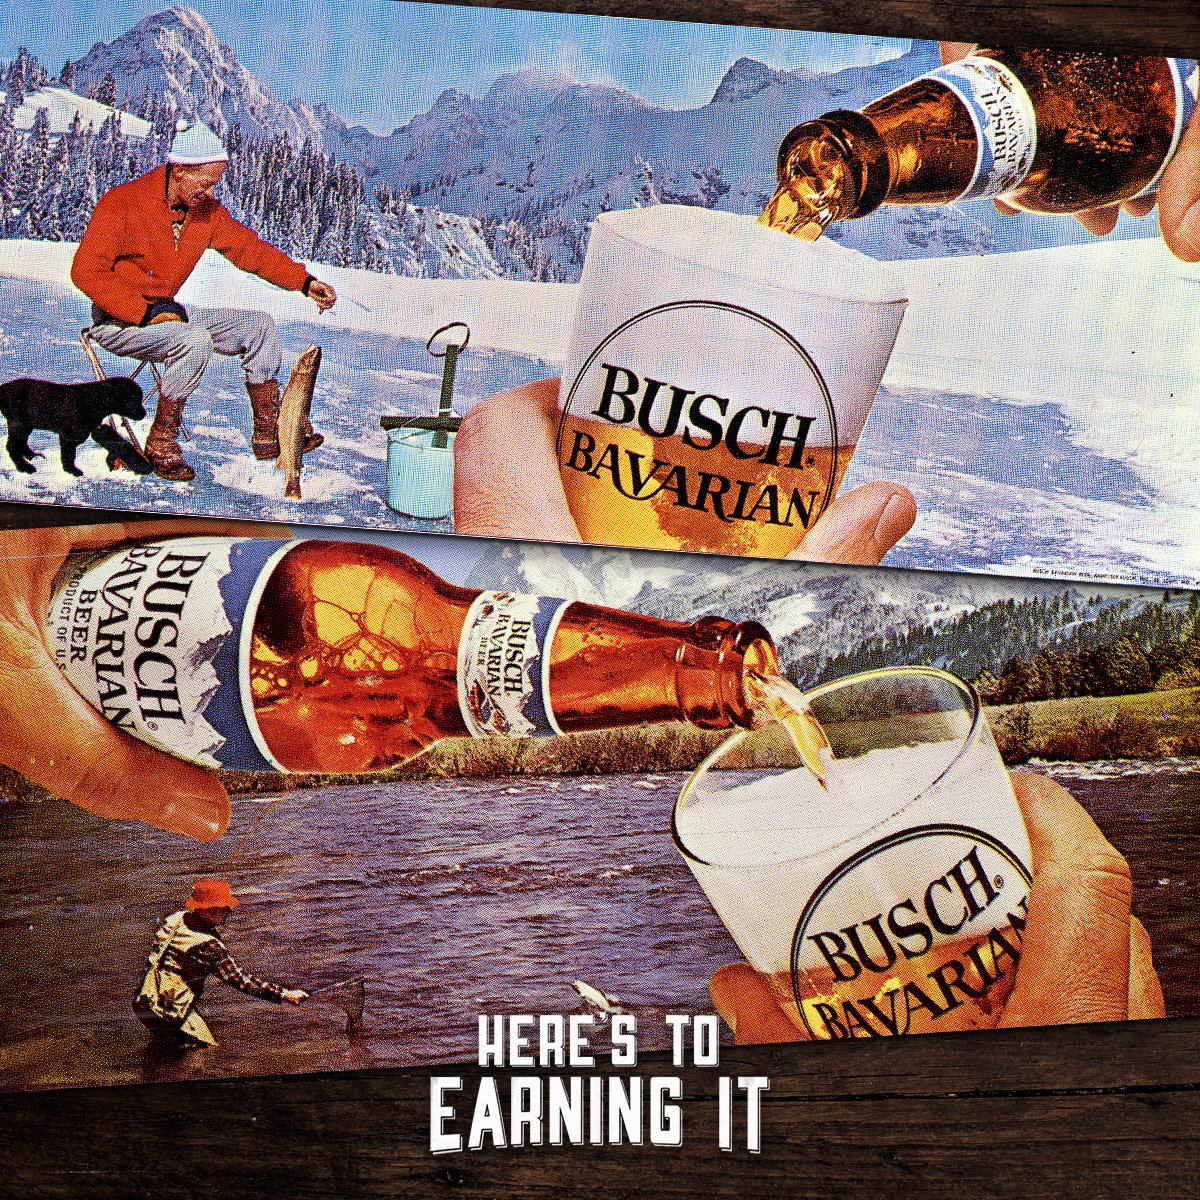 Busch Beer on Twitter: